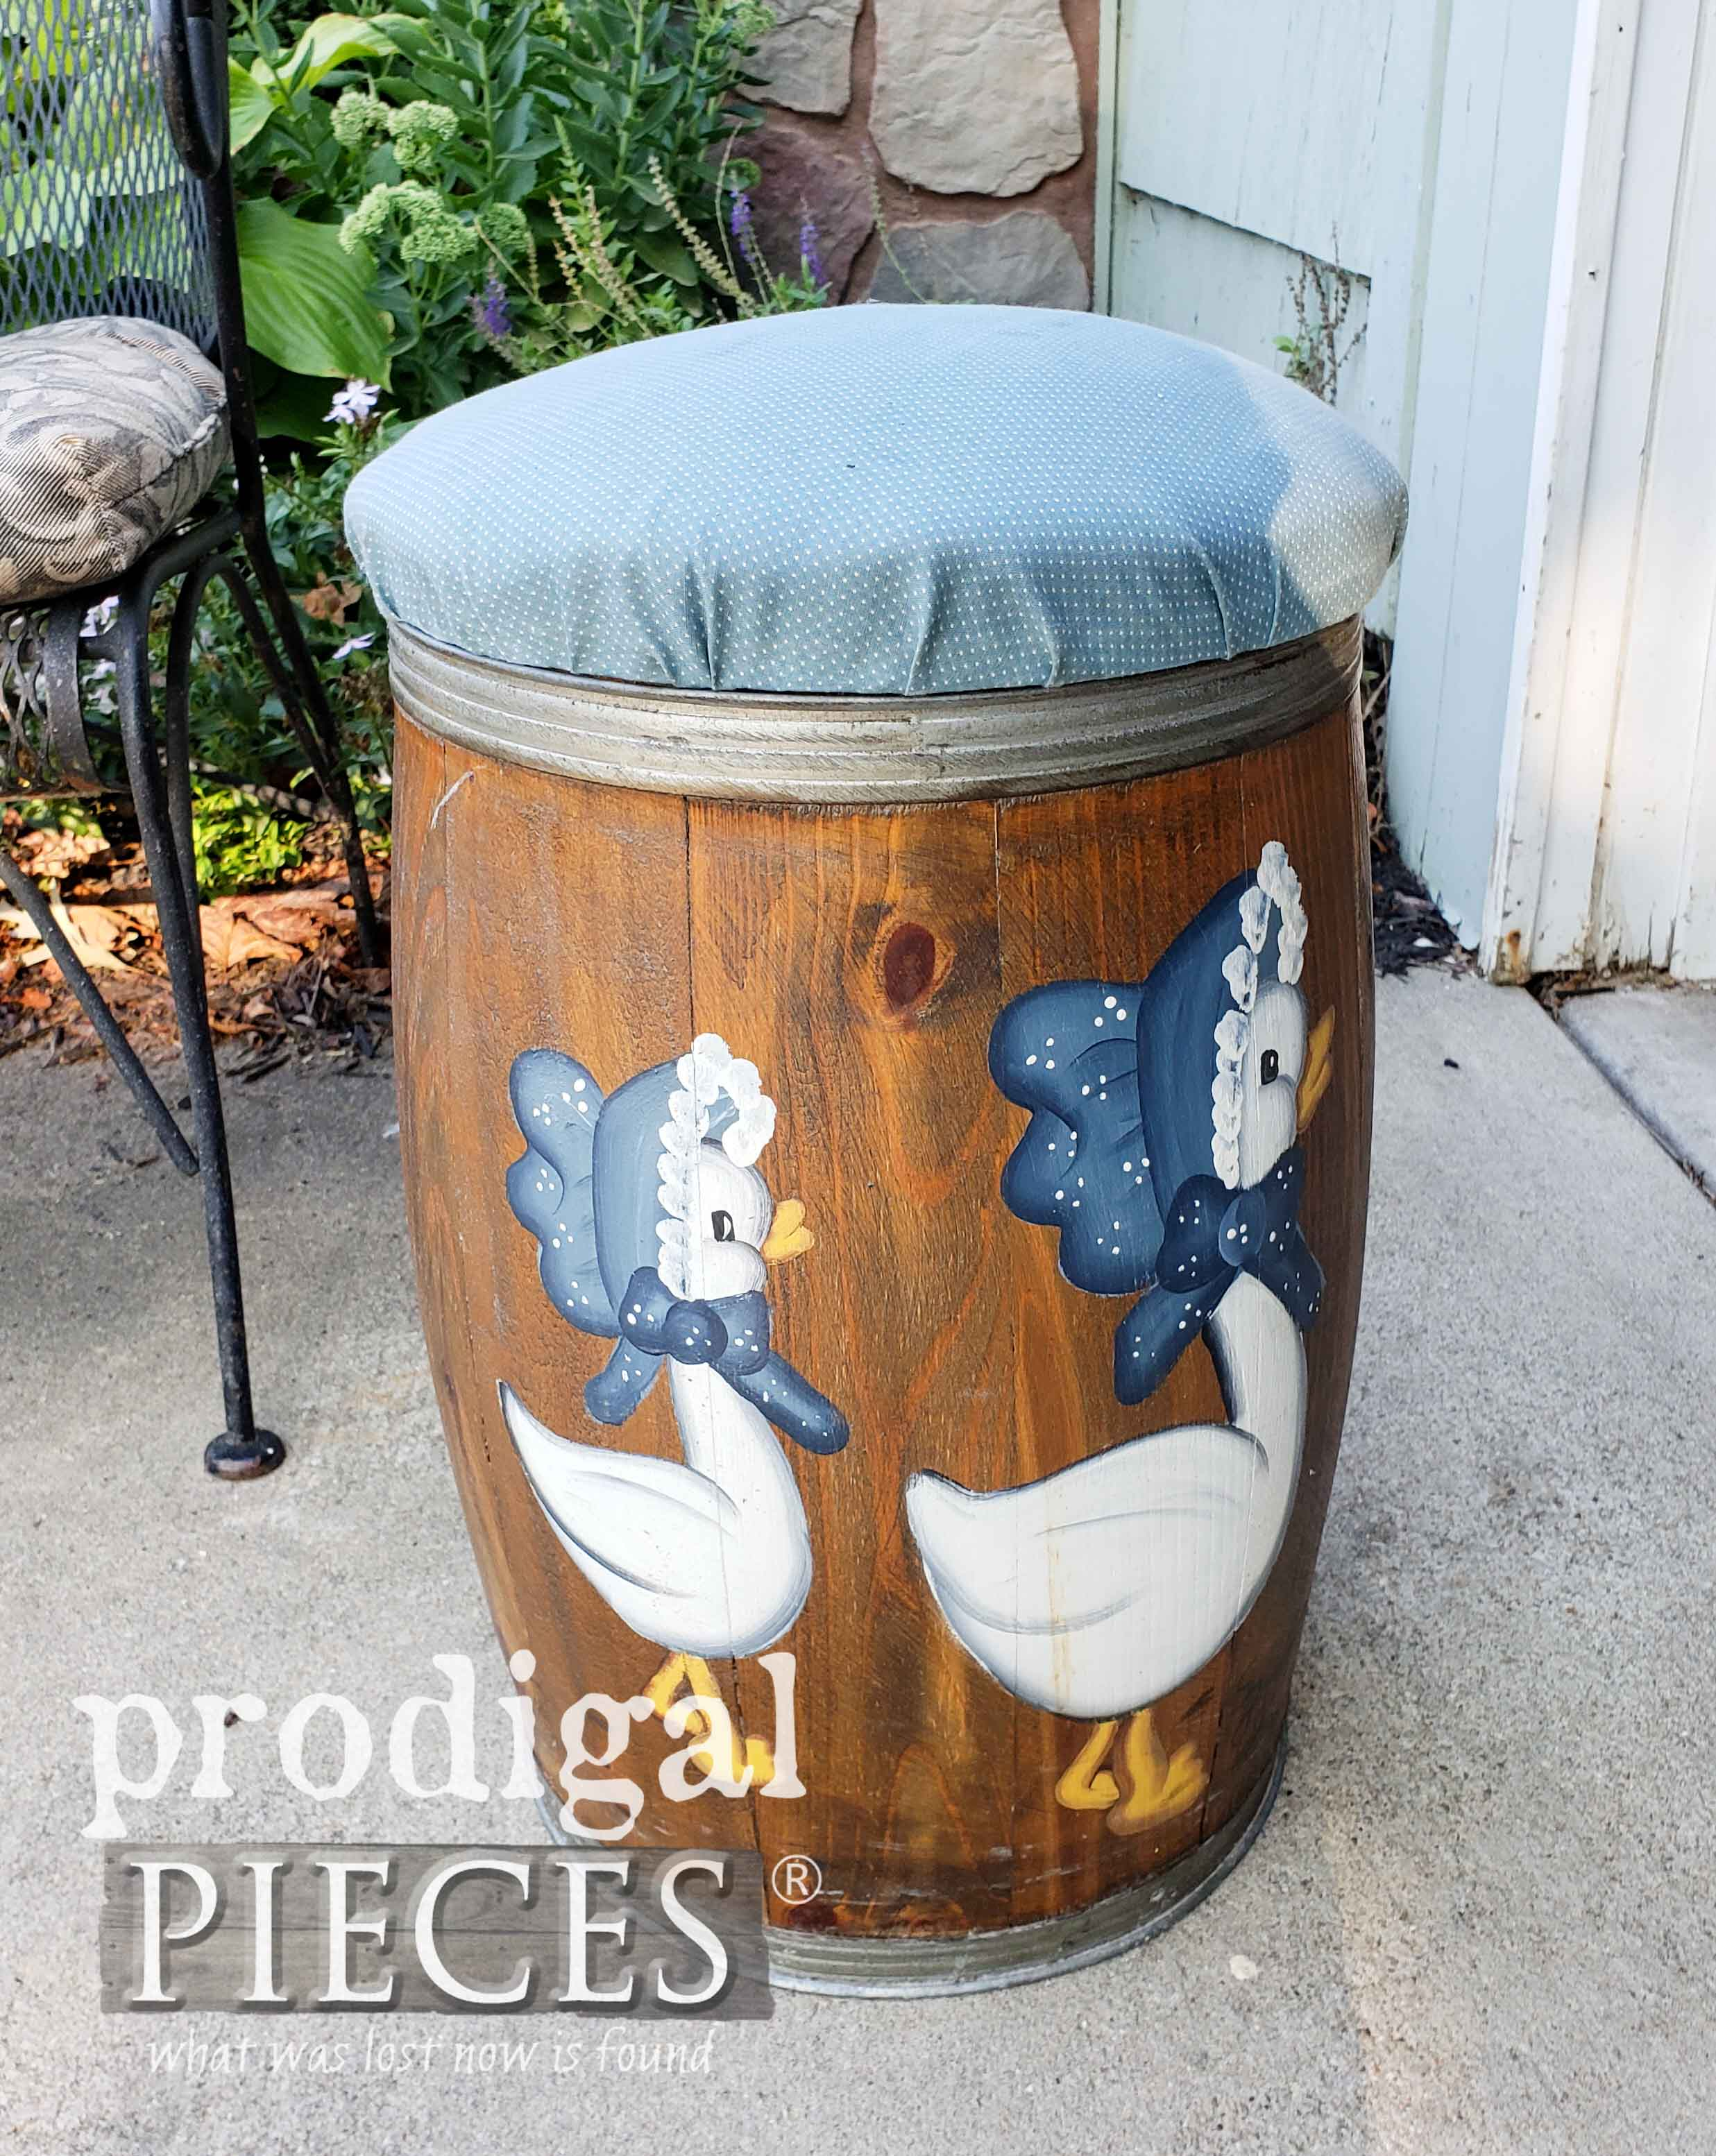 1980's Goose Nail Barrel Before Makeover by Prodigal Pieces | prodigalpieces.com